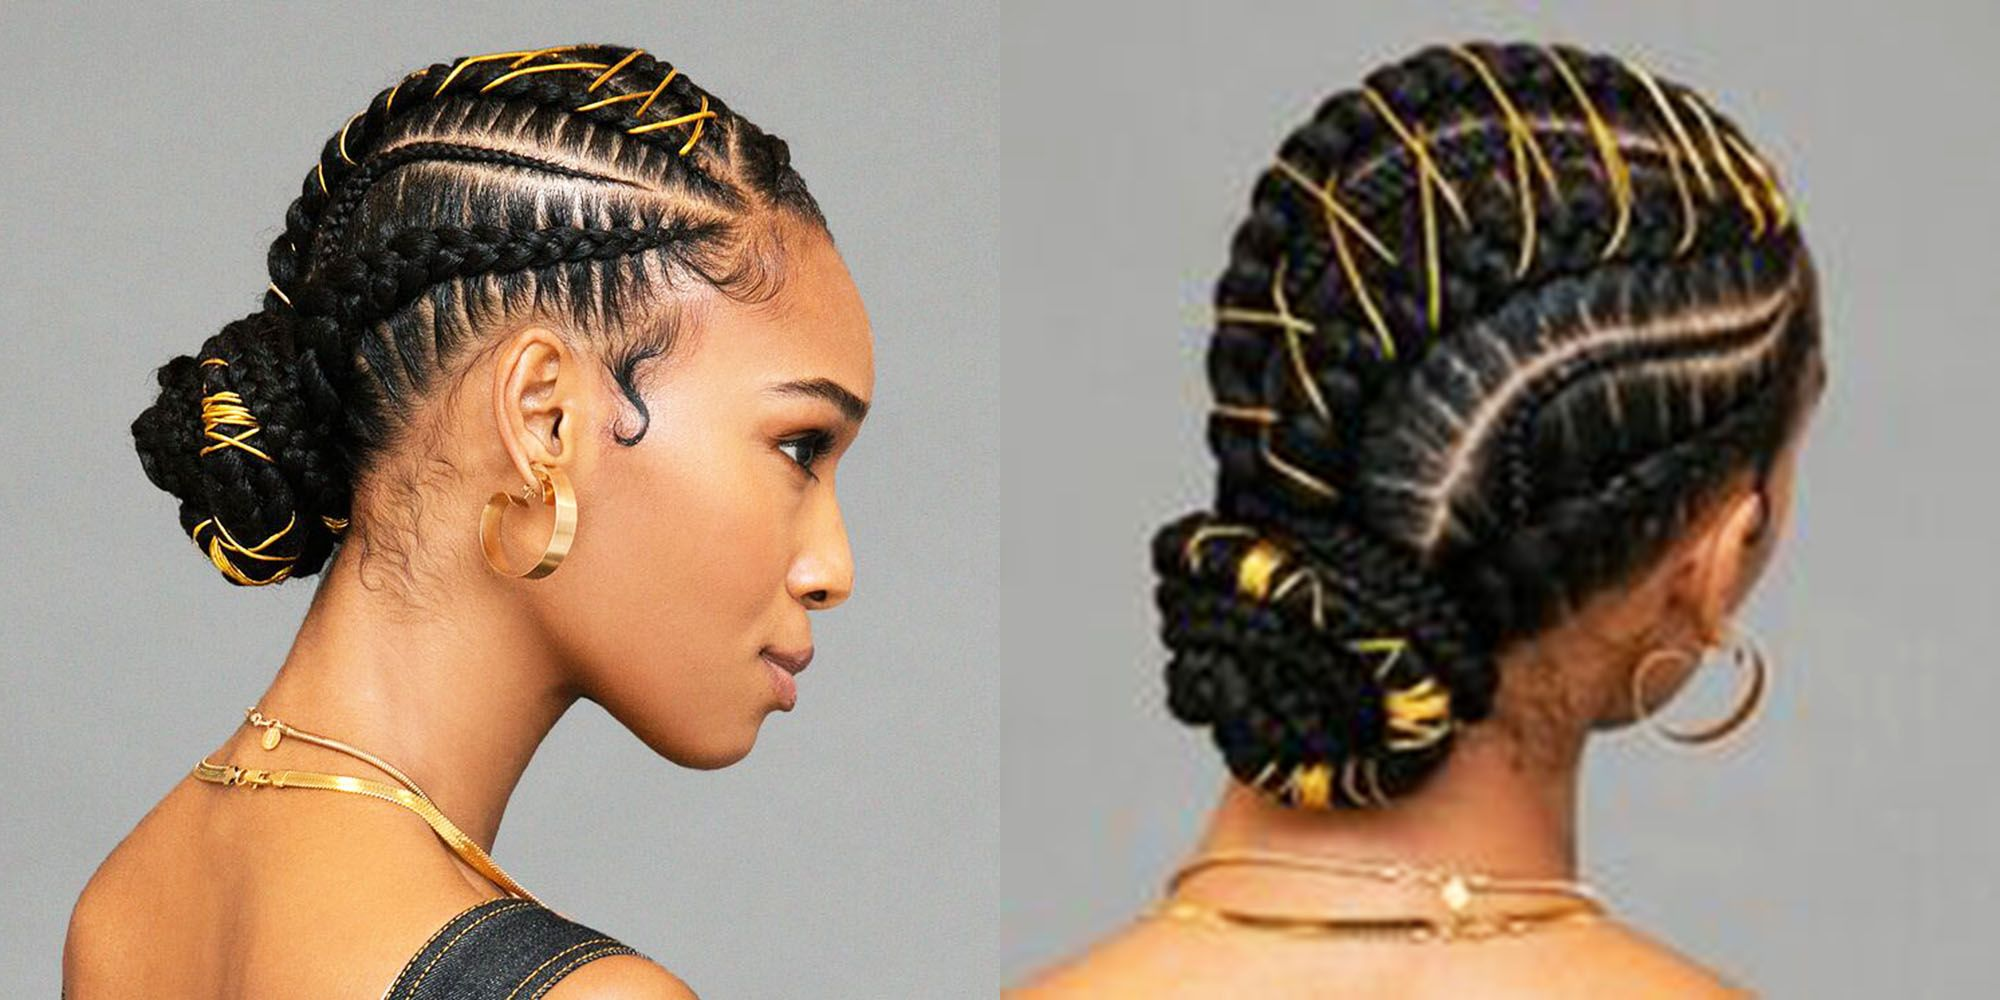 Hair Styles And Braids: Braided Hairstyles